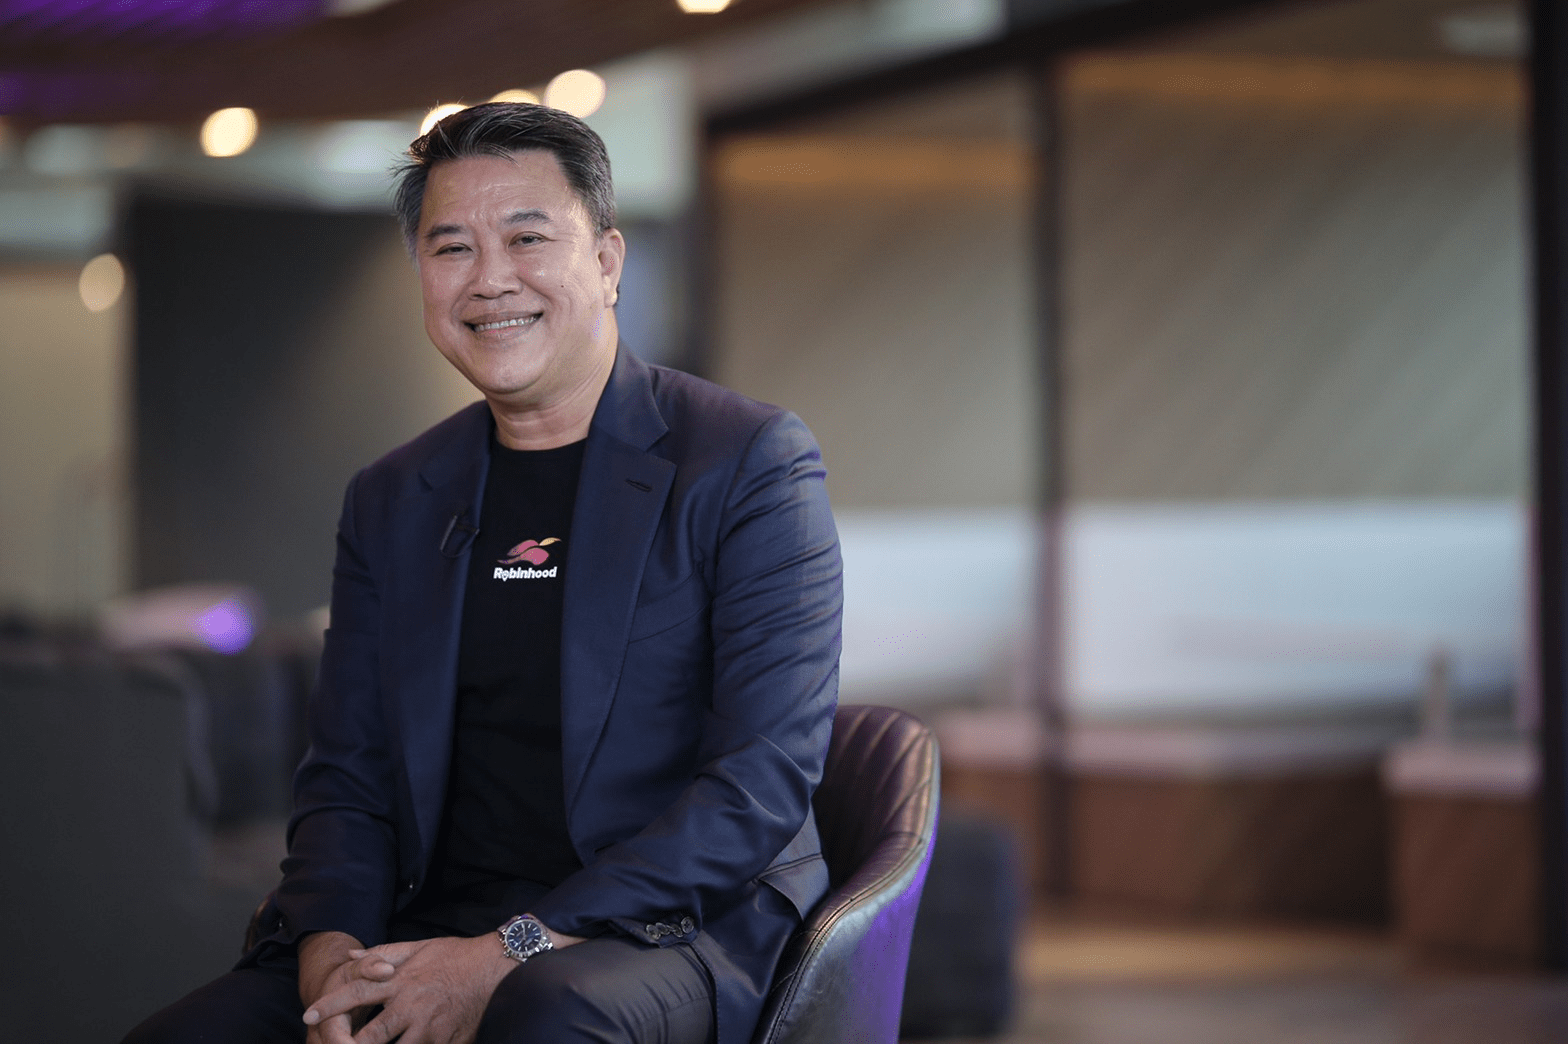 Thai Bank Launches New Food Delivery Platform